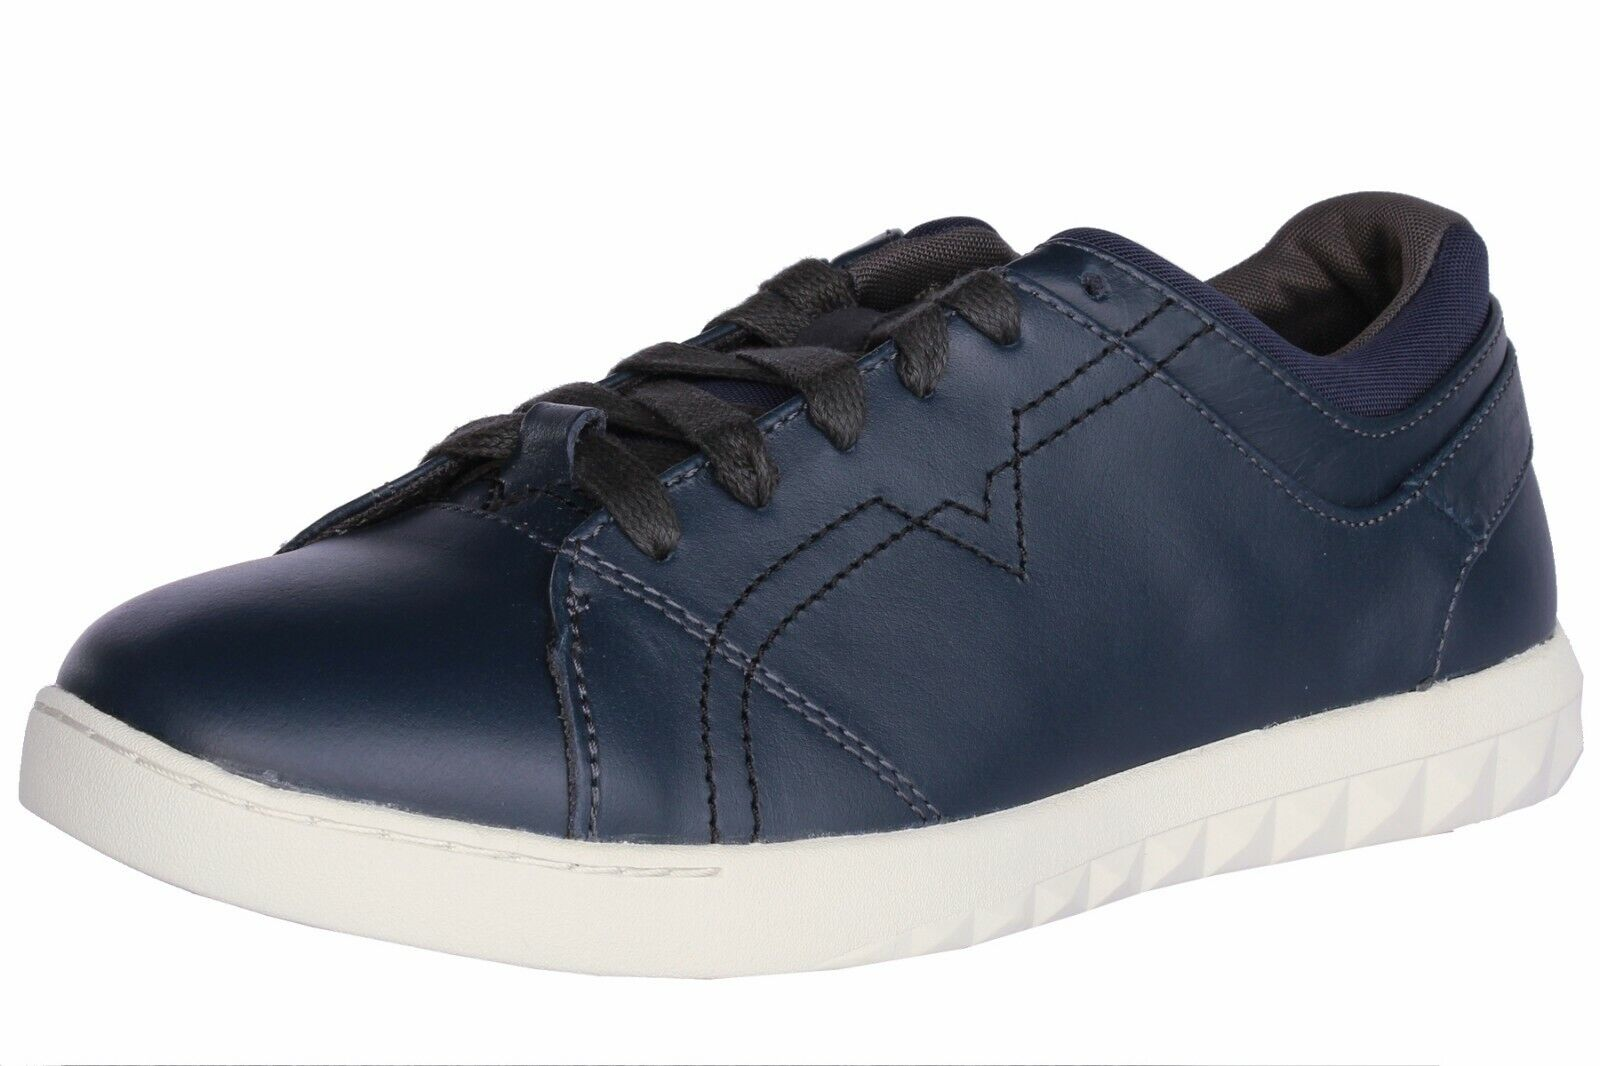 Diesel Men's Casual shoes S-Studdzy Sneaker Leather Y01451 - PR215 -  H6372 bluee